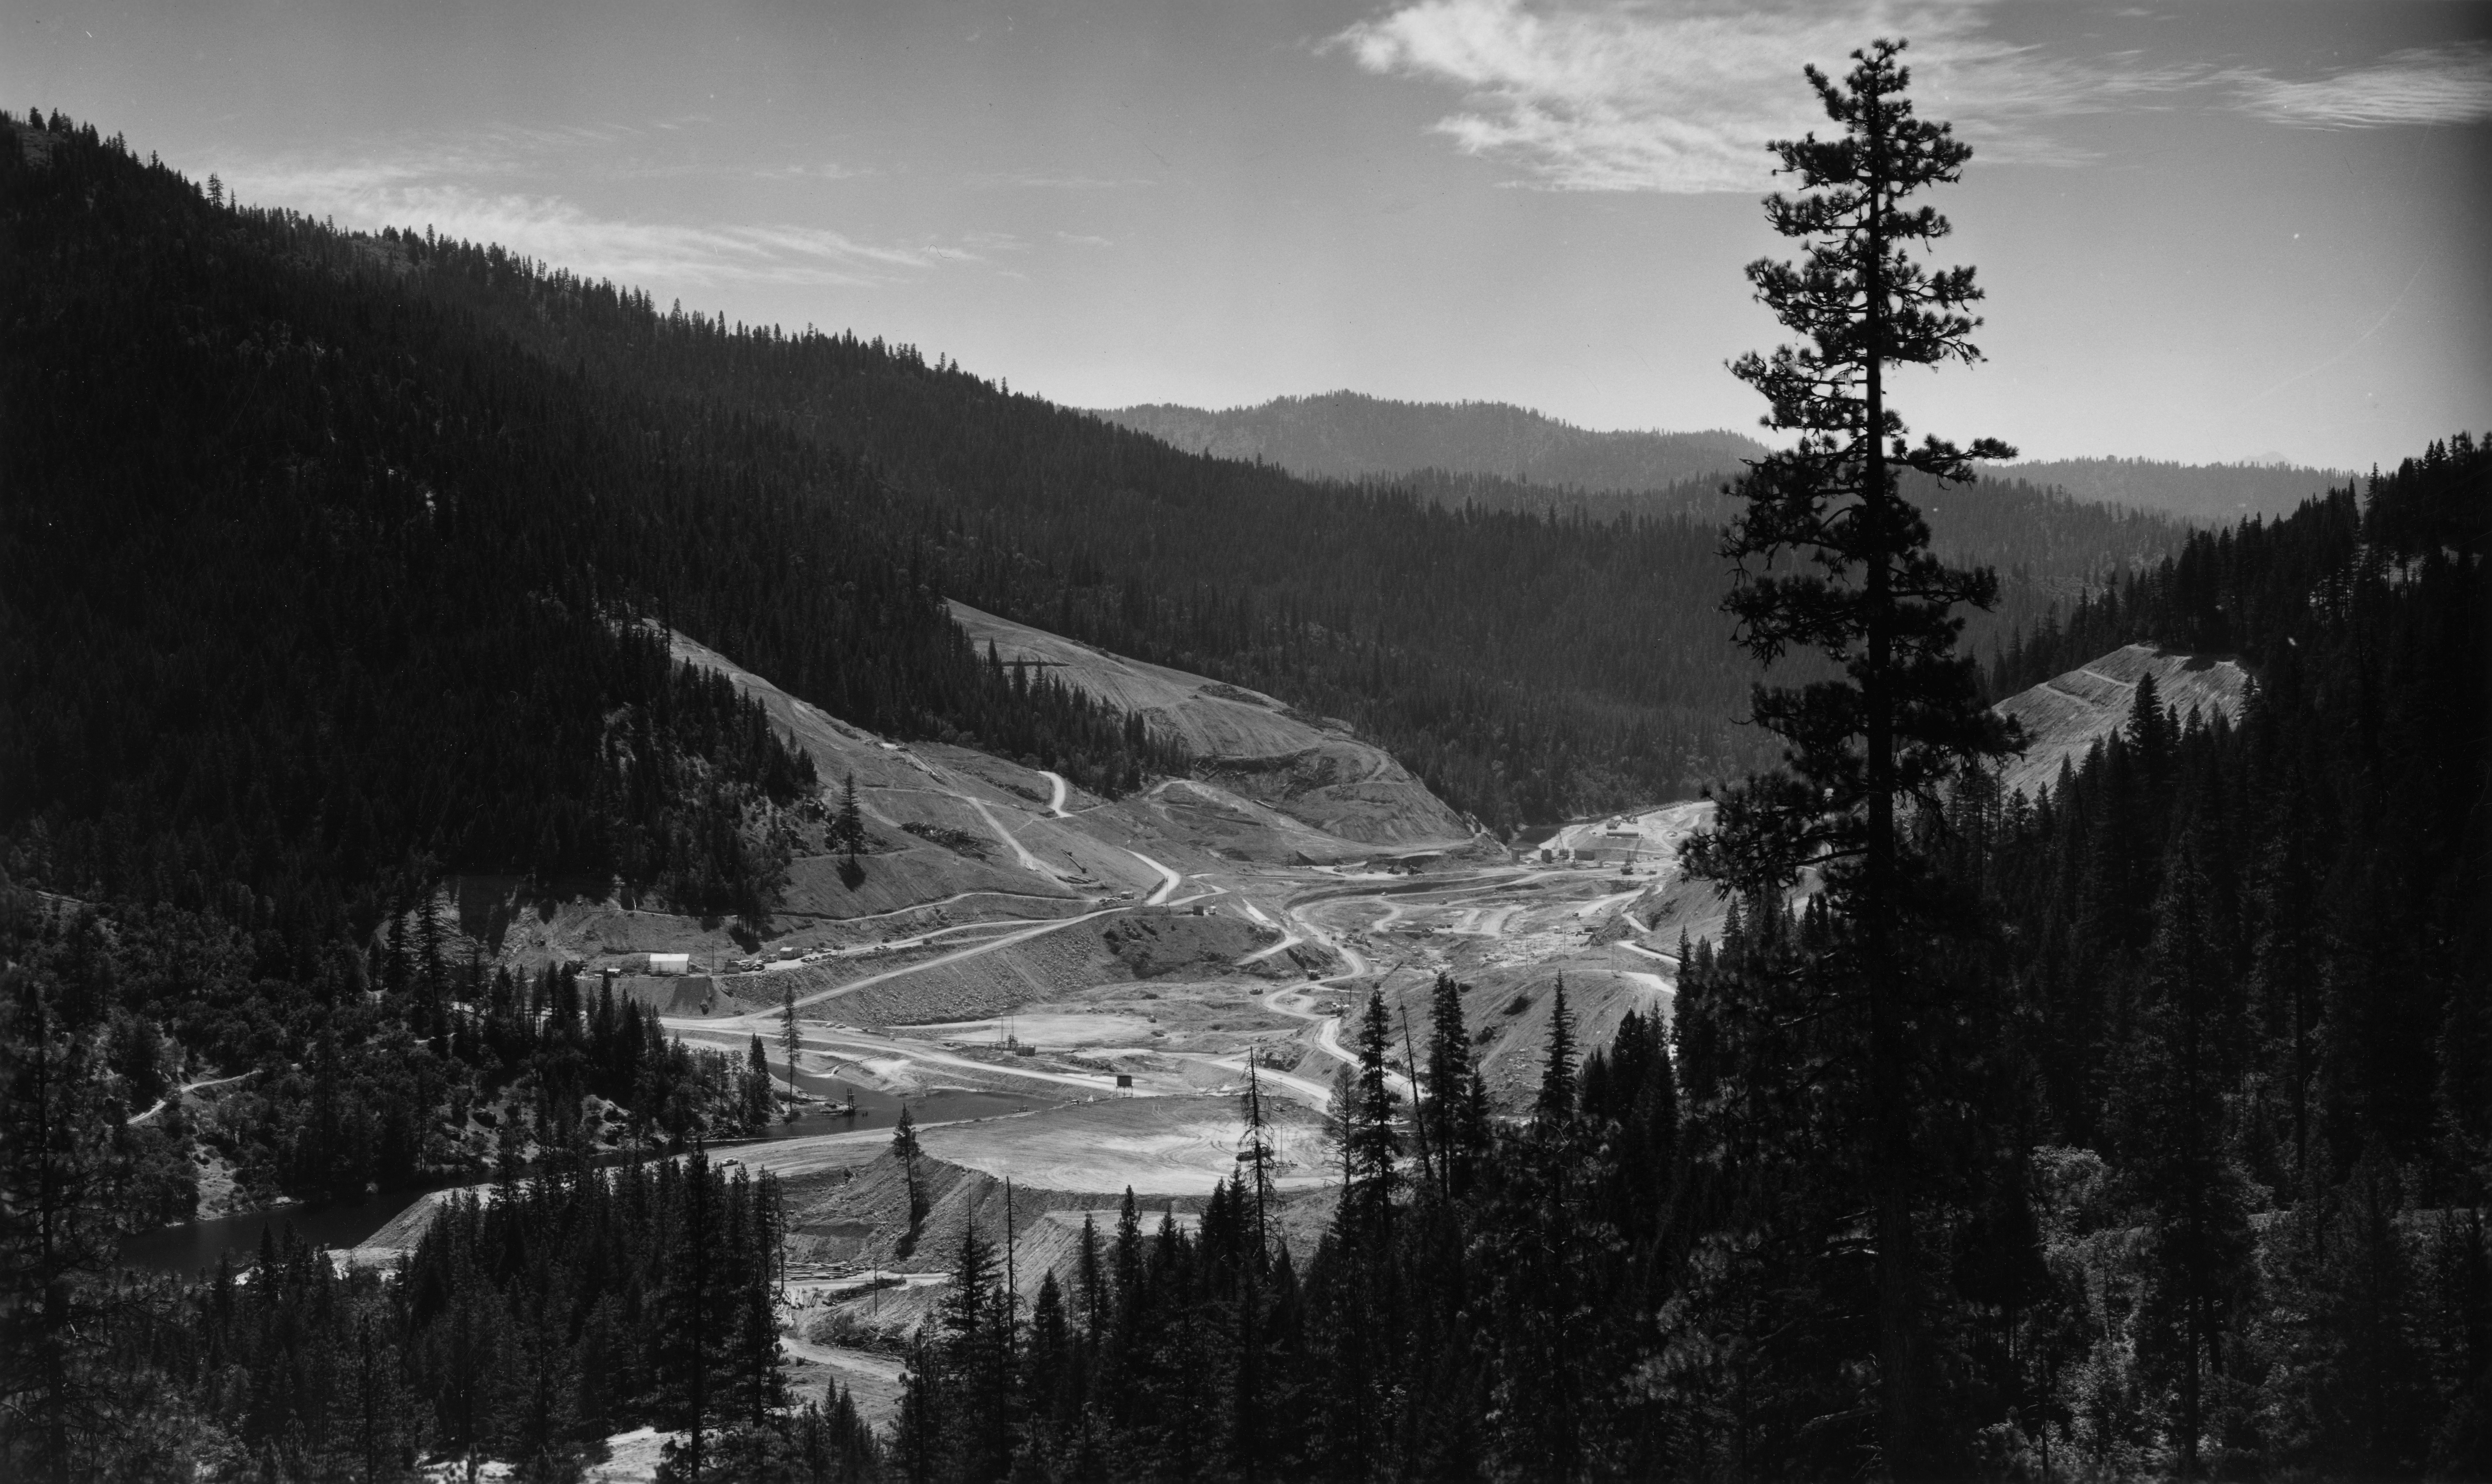 Construction of the Trinity Dam in 1959. Photo by Boni DeCamp and property of DeCamp Family